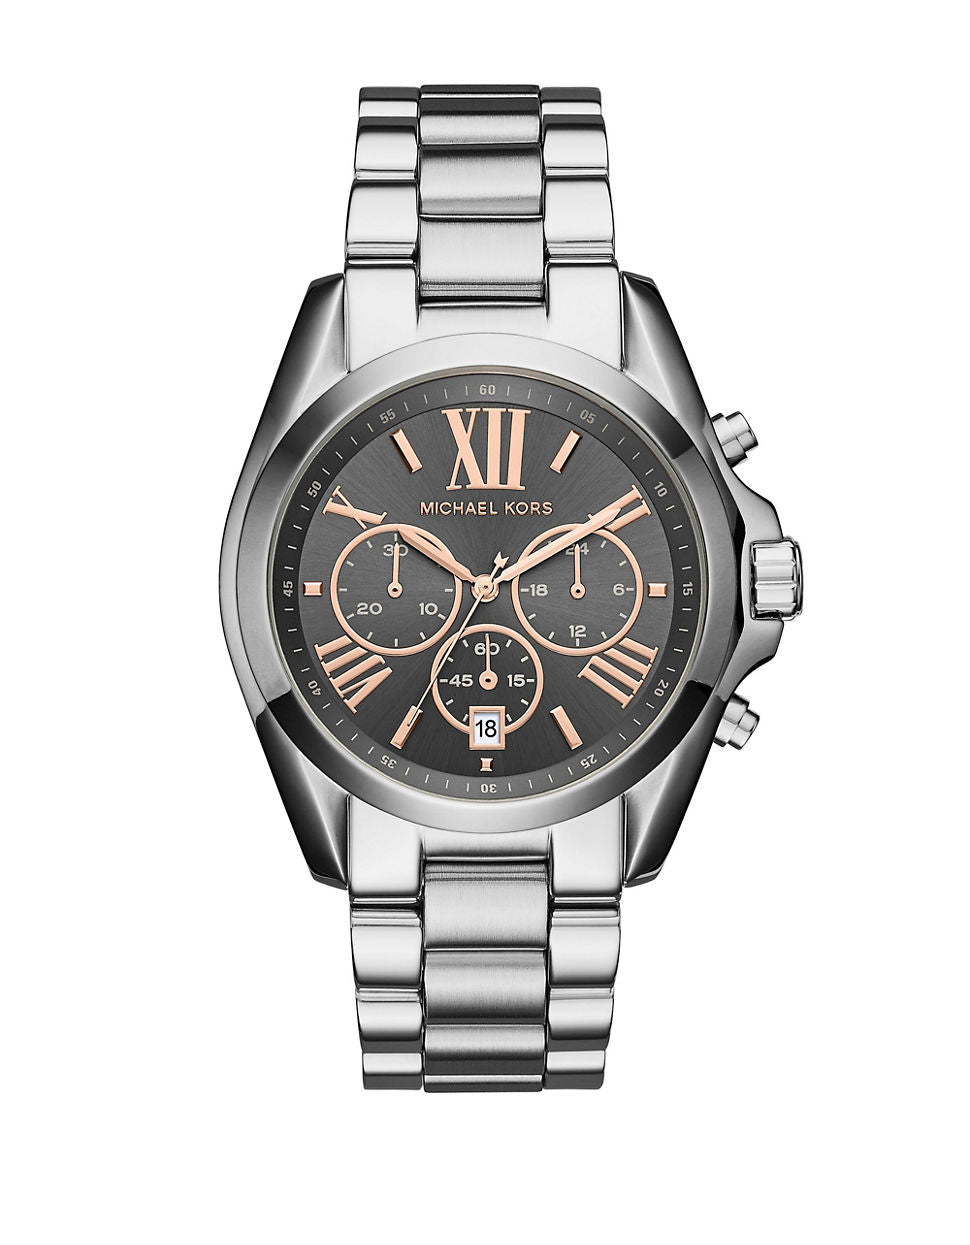 MICHAEL KORS Bradshaw Stainless-Steel Chronograph Watch